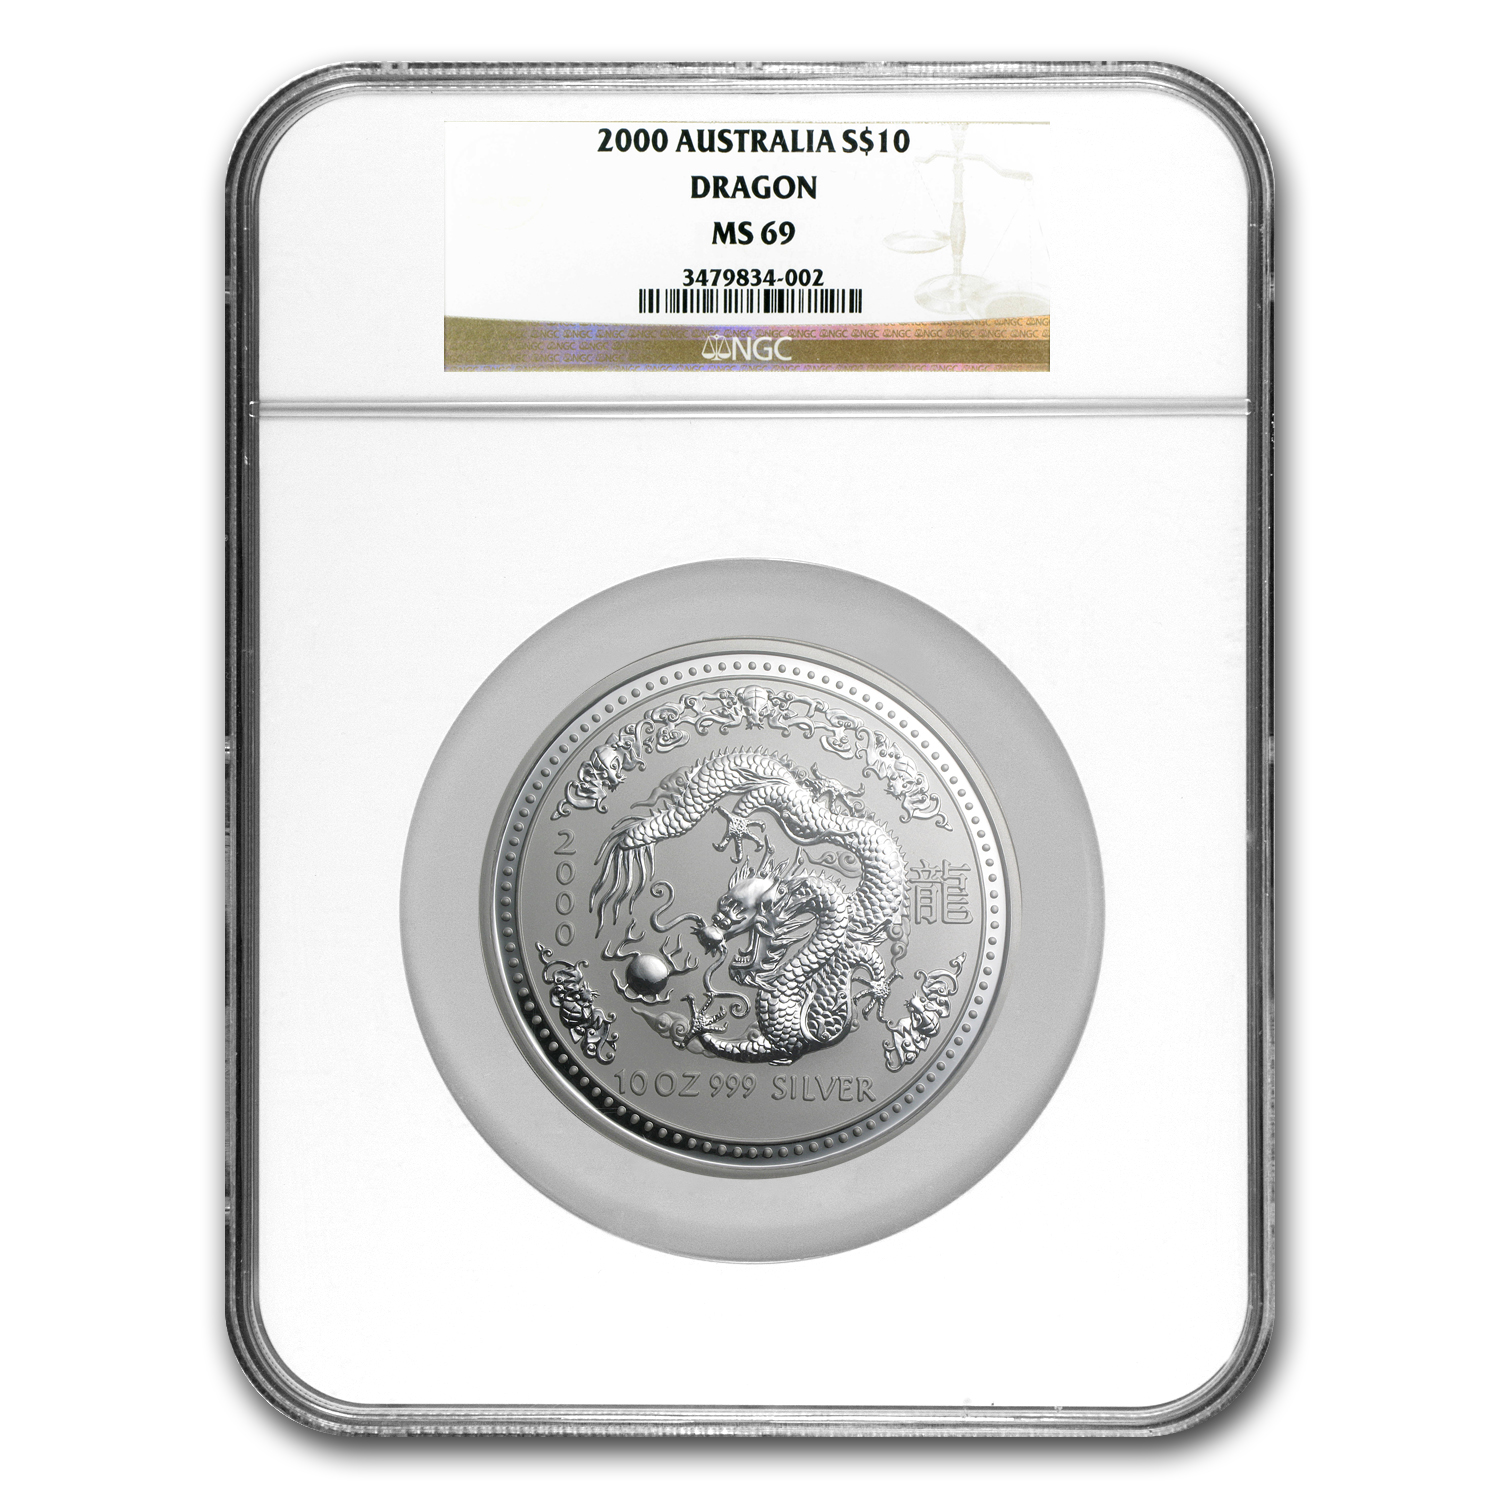 2000 10 oz Silver Lunar Year of the Dragon (Series I) MS-69 NGC